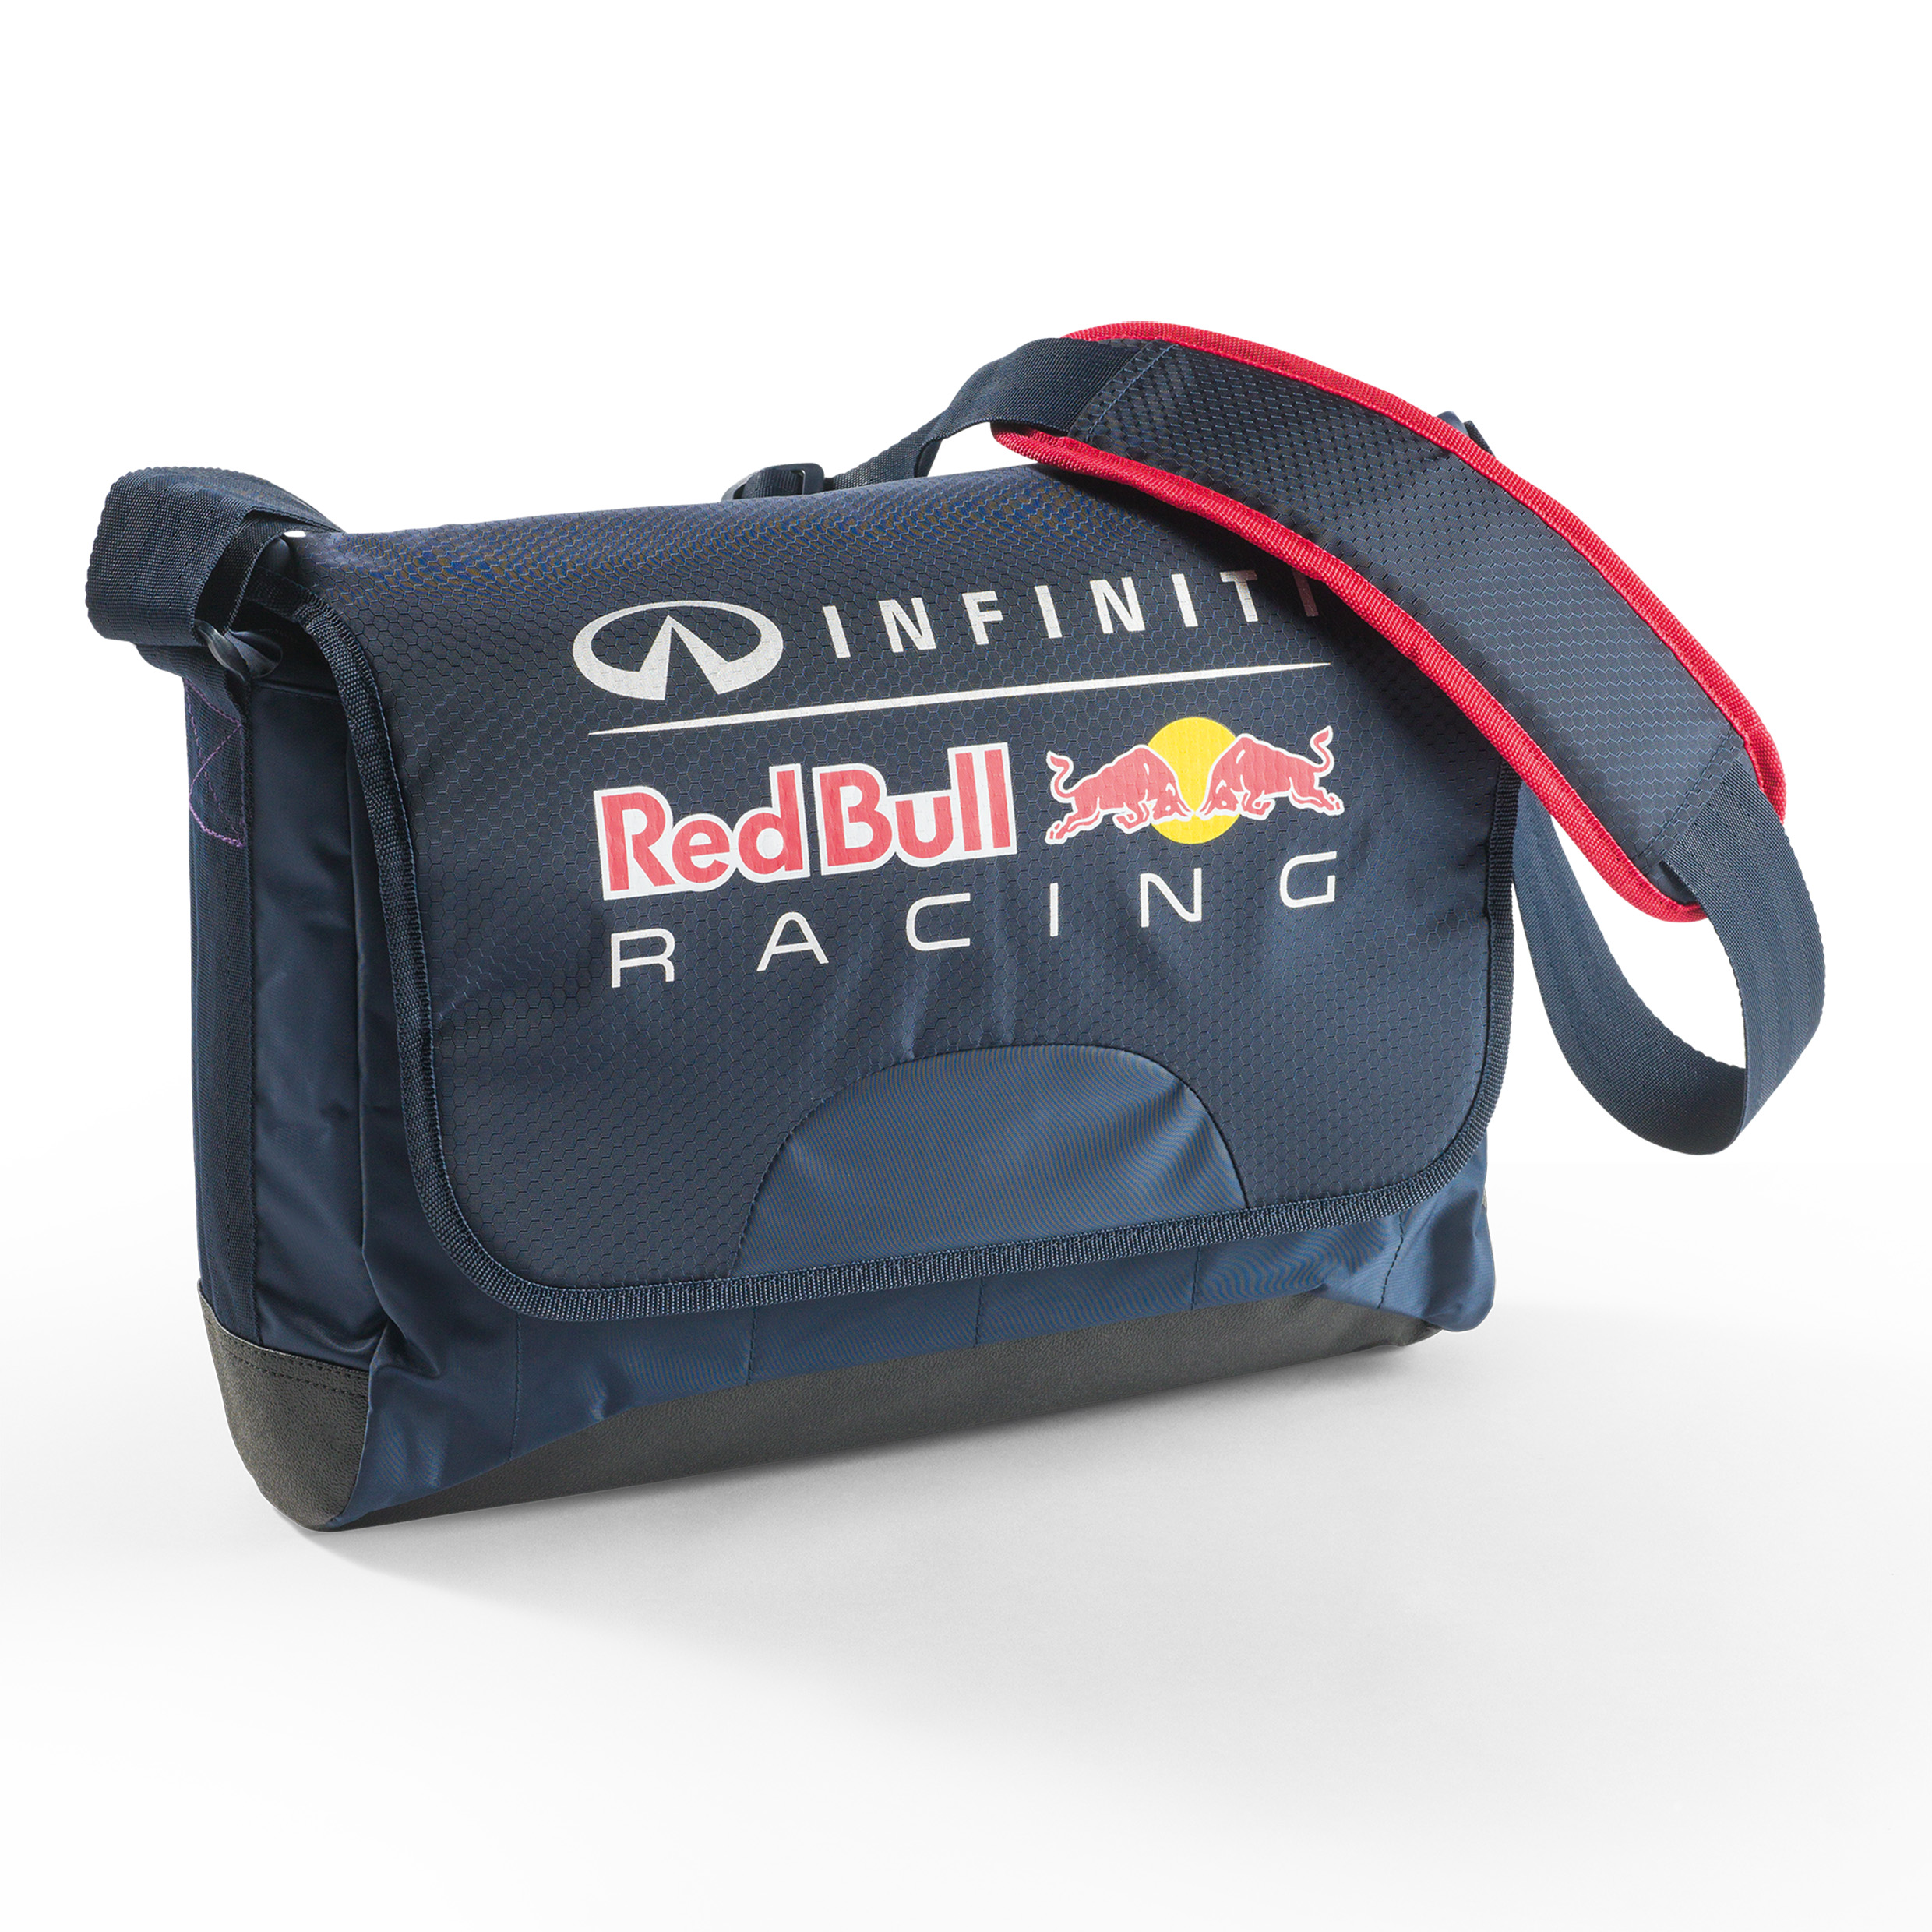 Infiniti Red Bull Racing Messenger Bag